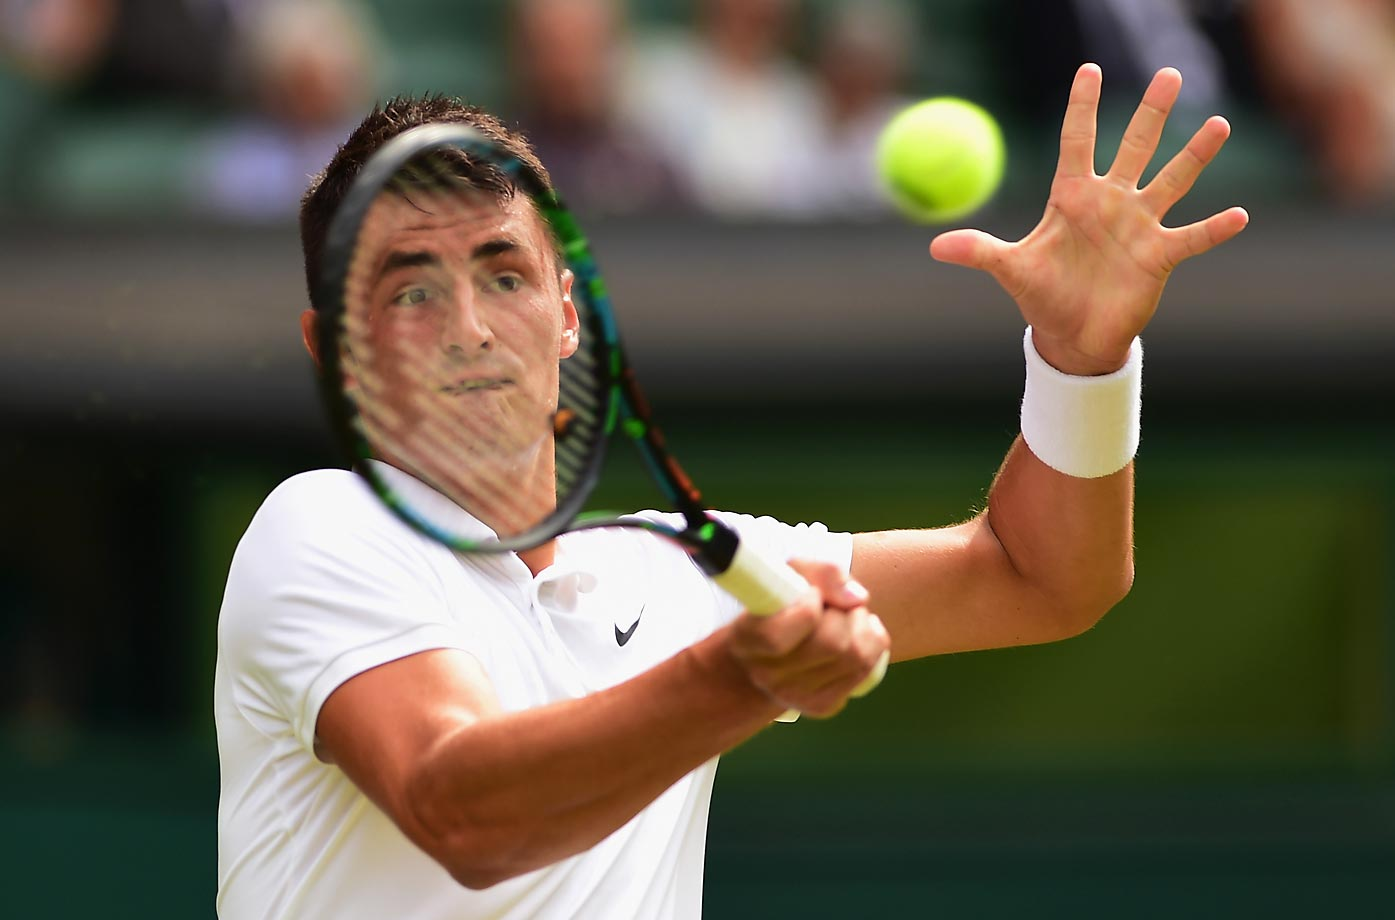 Bernard Tomic plays a forehand against Novak Djokovic at Wimbledon.